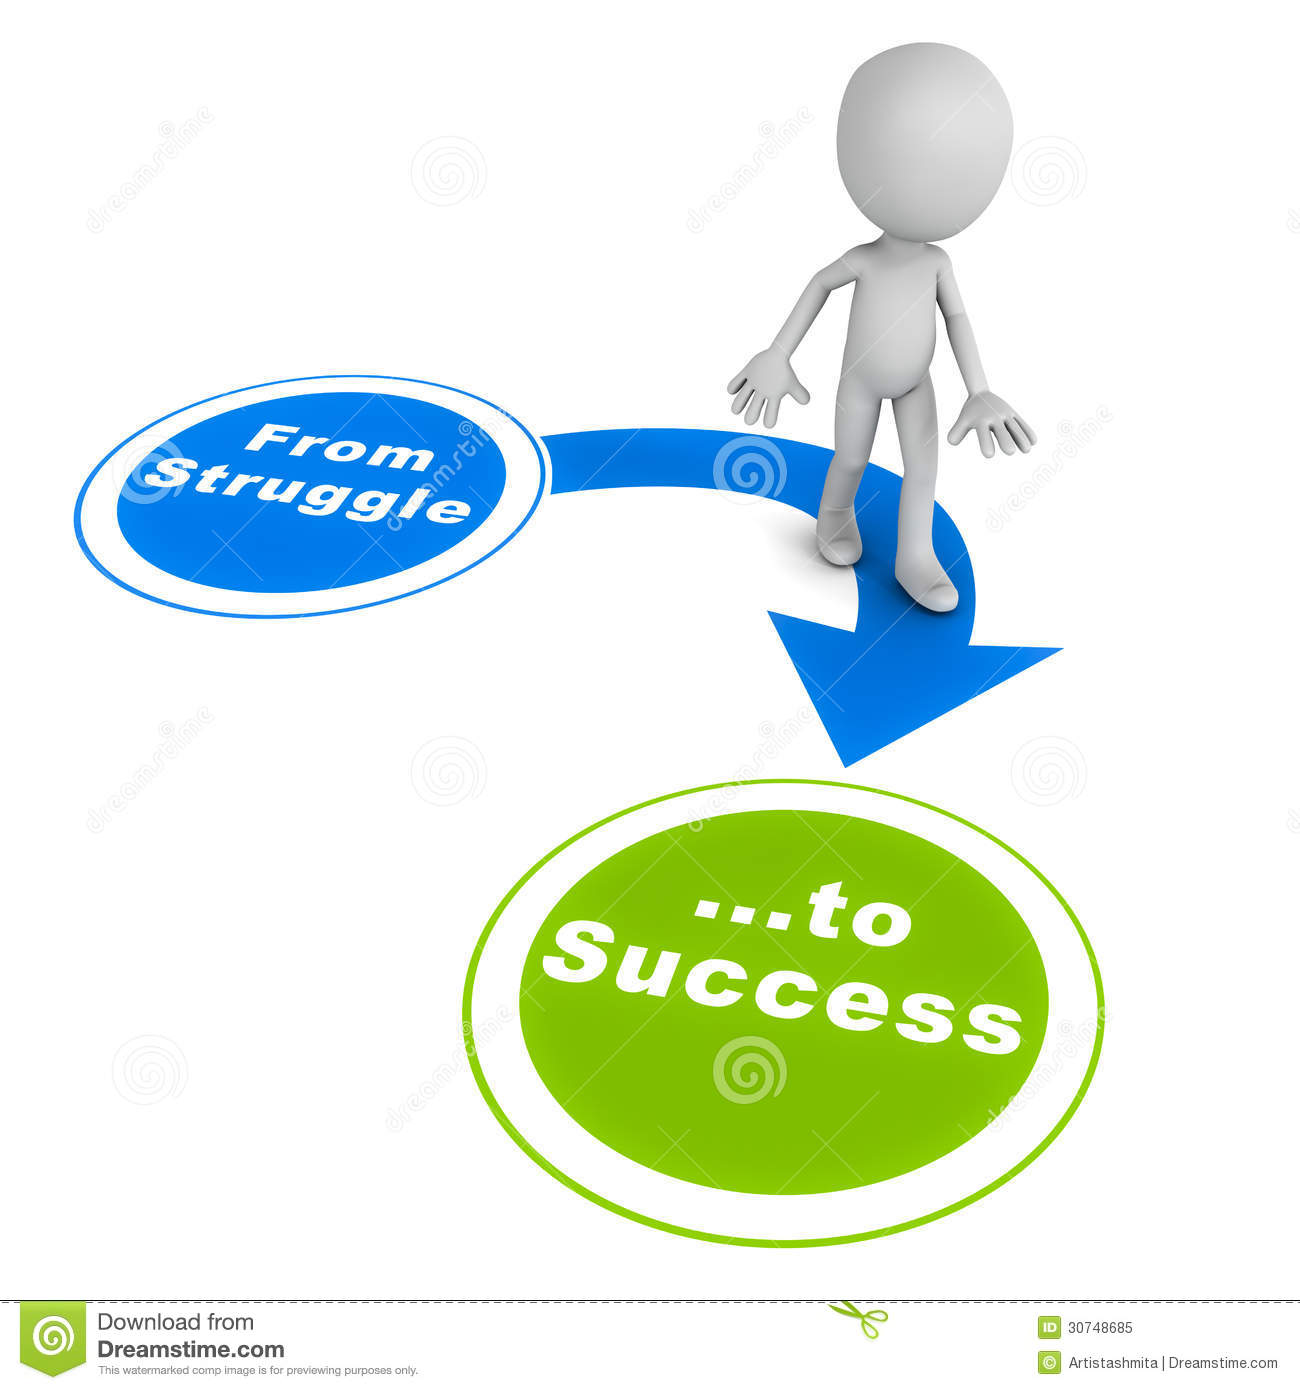 Success clipart images free download image black and white stock Struggle To Success Royalty Free Stock Photo - Image: 30748685 image black and white stock